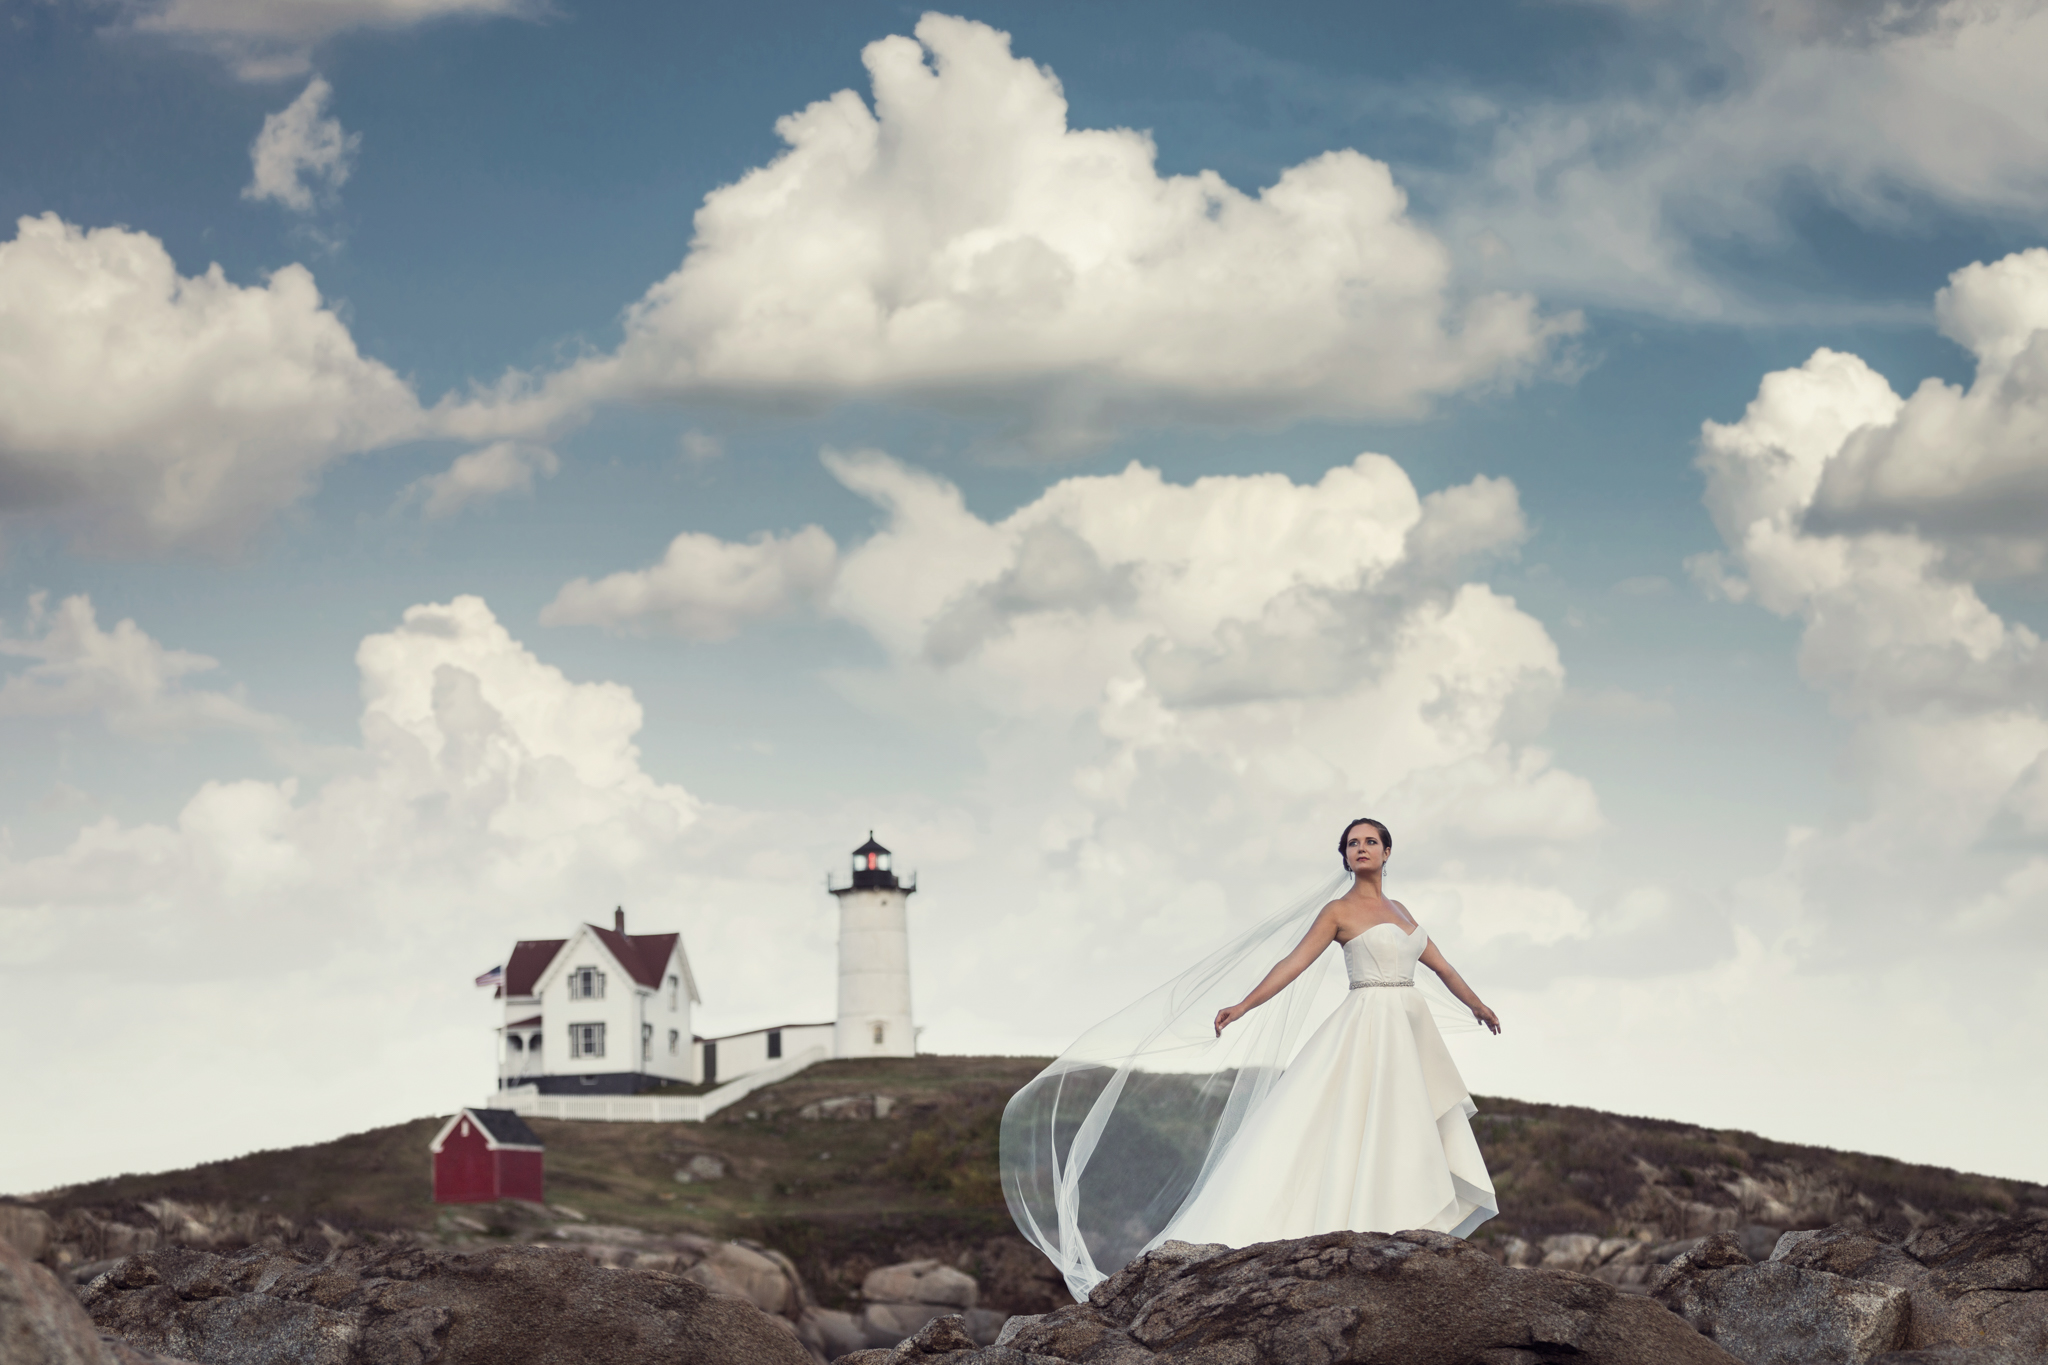 wedding-photographer-new-hampshire-boston-destination-art-artistic-chris-keeley-photography-dover-nh09.jpg